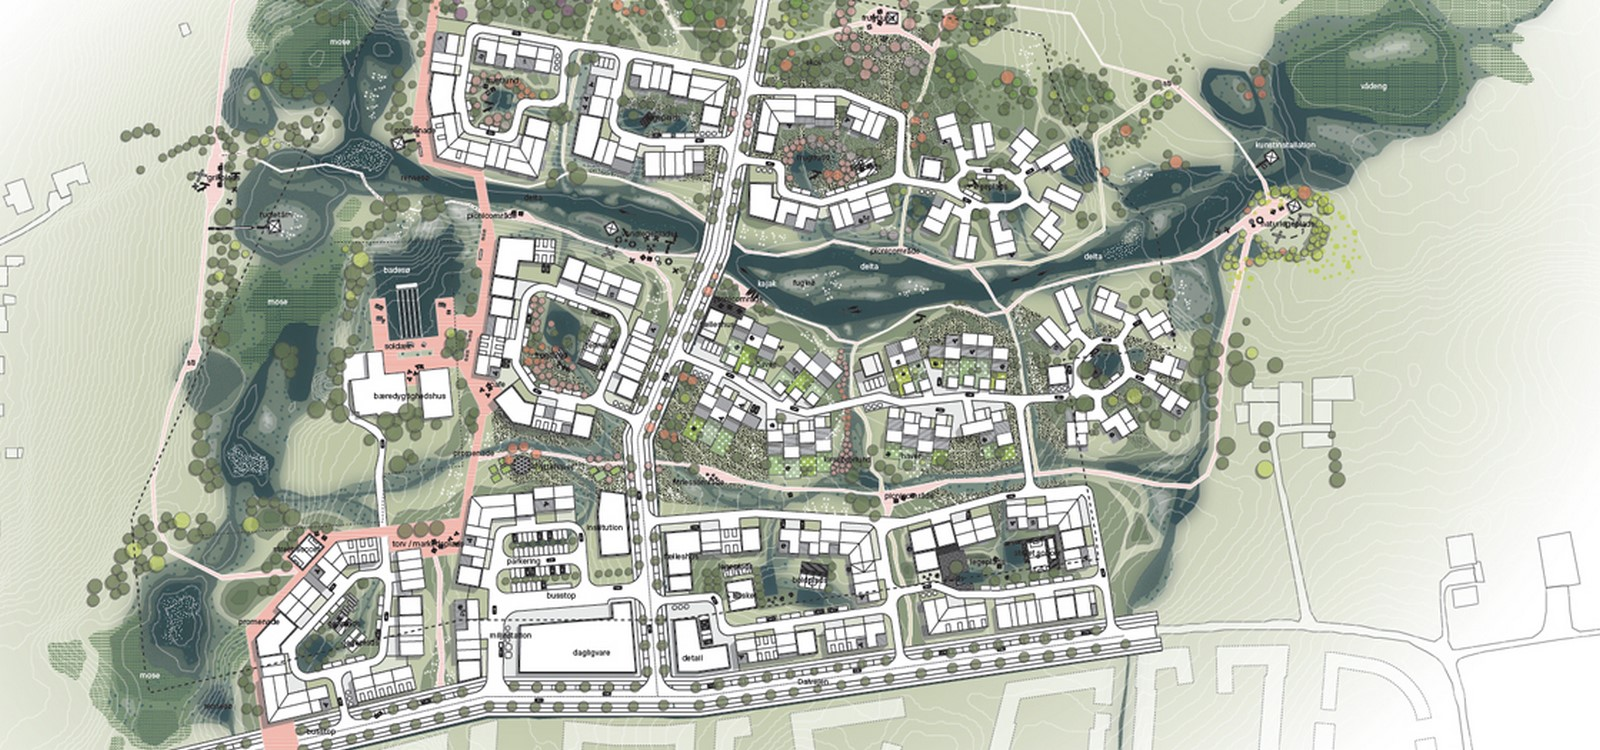 The Delta District in the future city of Vinge - Sheet3